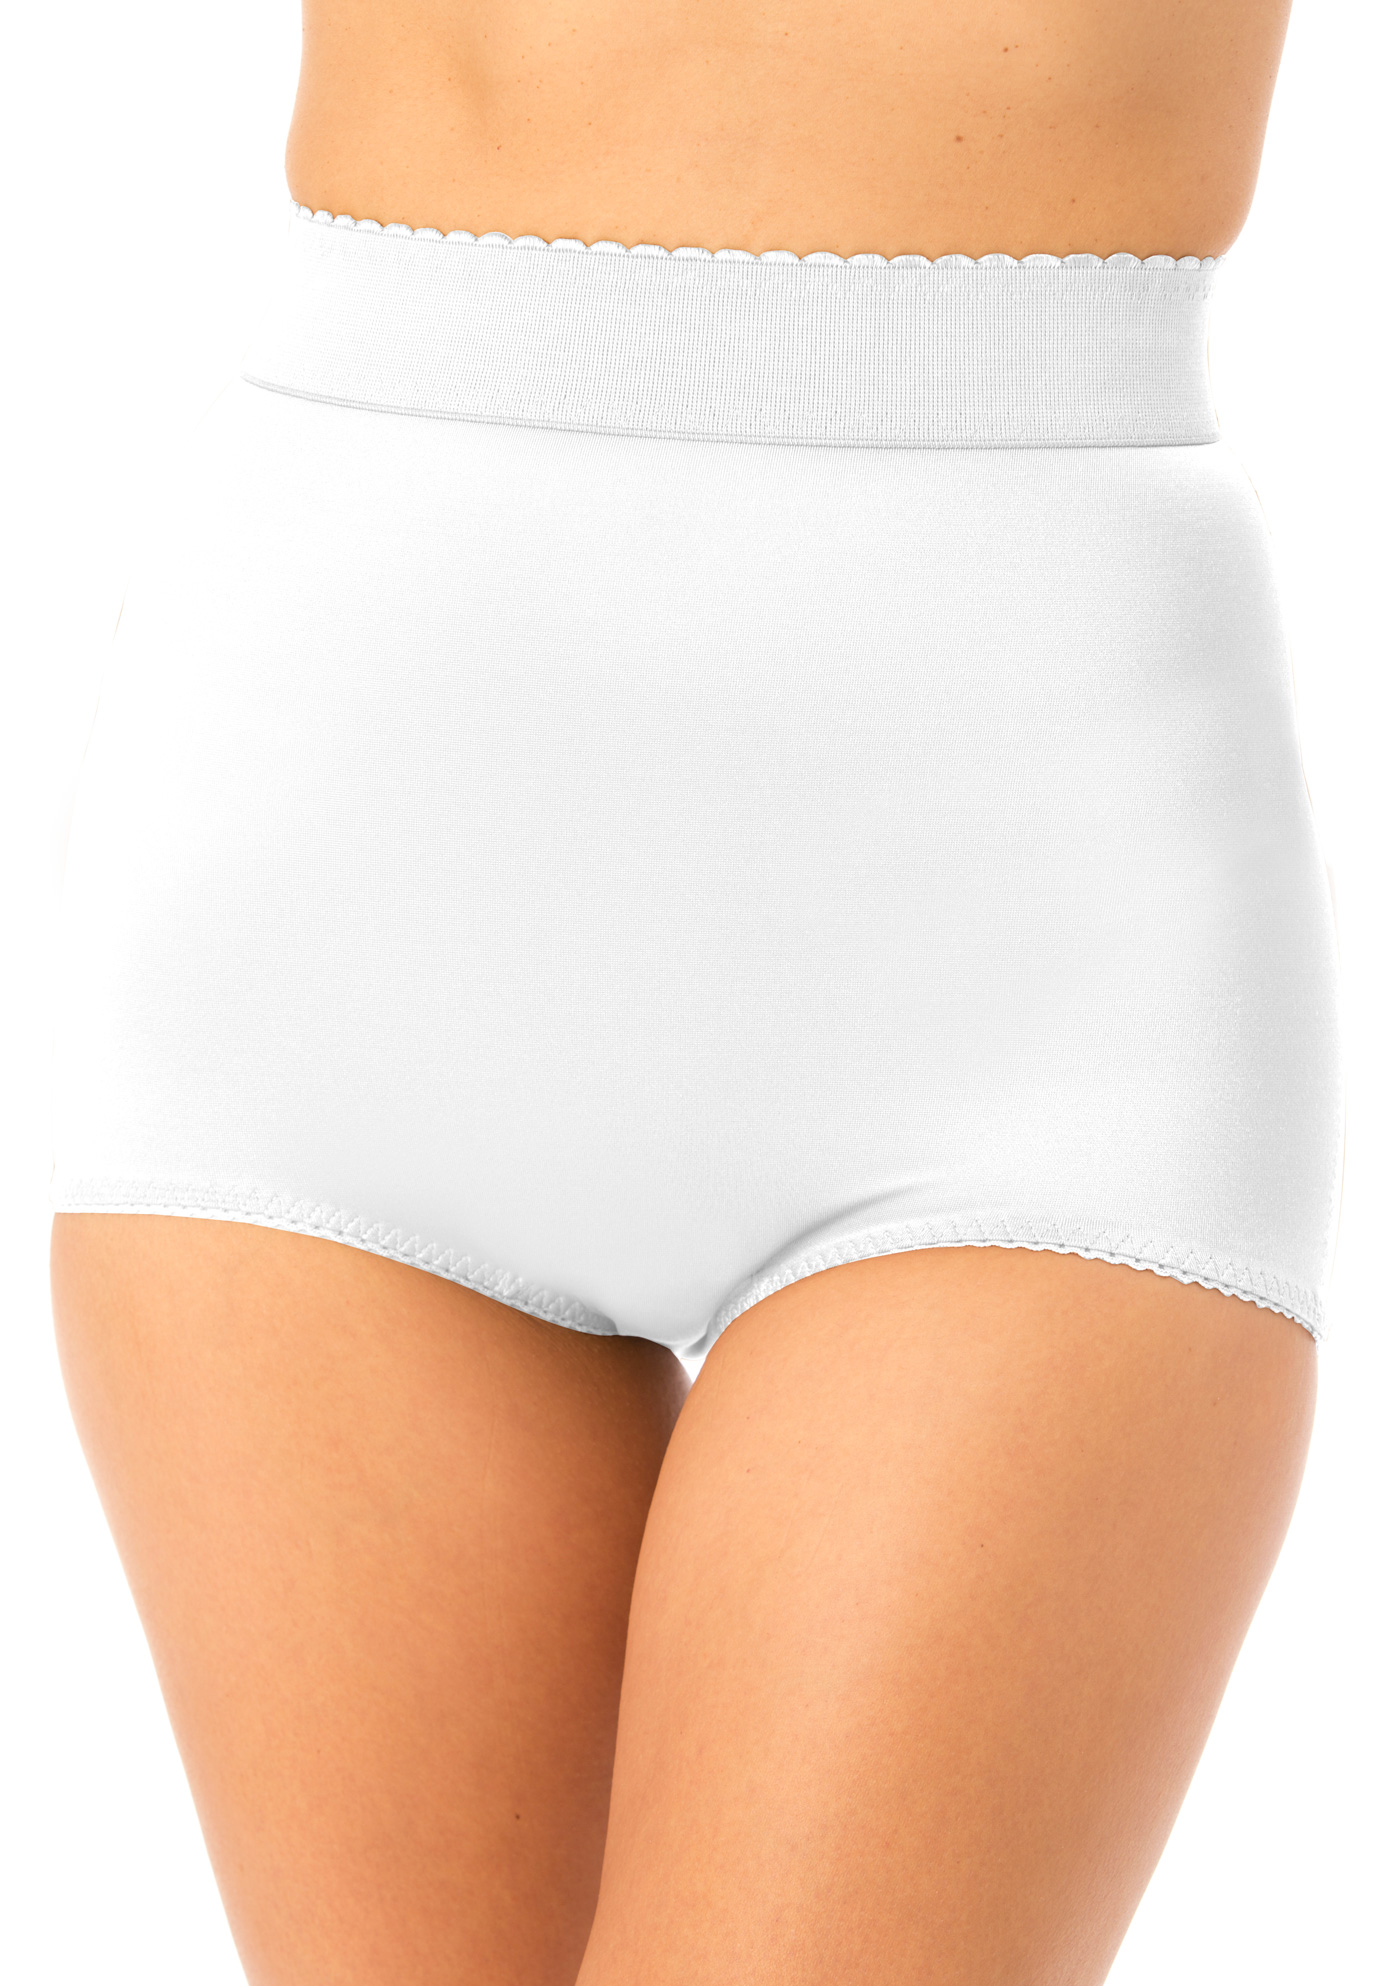 Rago® Light Control High-Waist Brief #513,